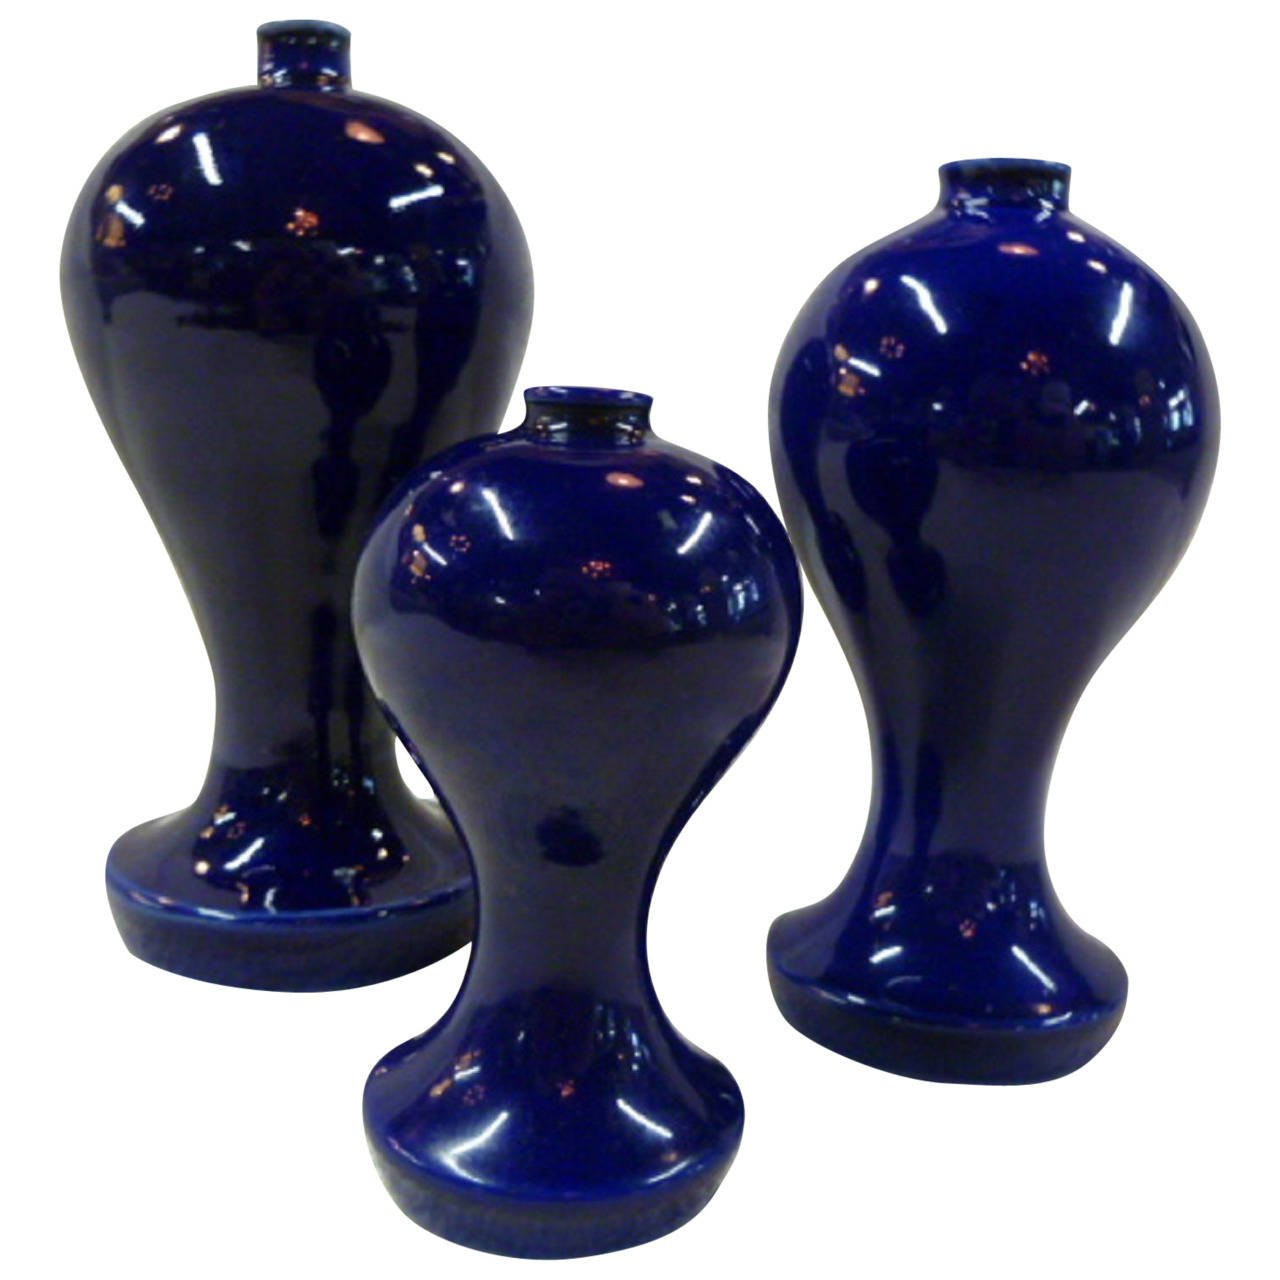 Correia Art Glass Vase Of Japanese Art Deco Lusterware Vase Floral with Gold Accent Circa with Regard to 1930s Japanese Cobalt Blue Altar Vases